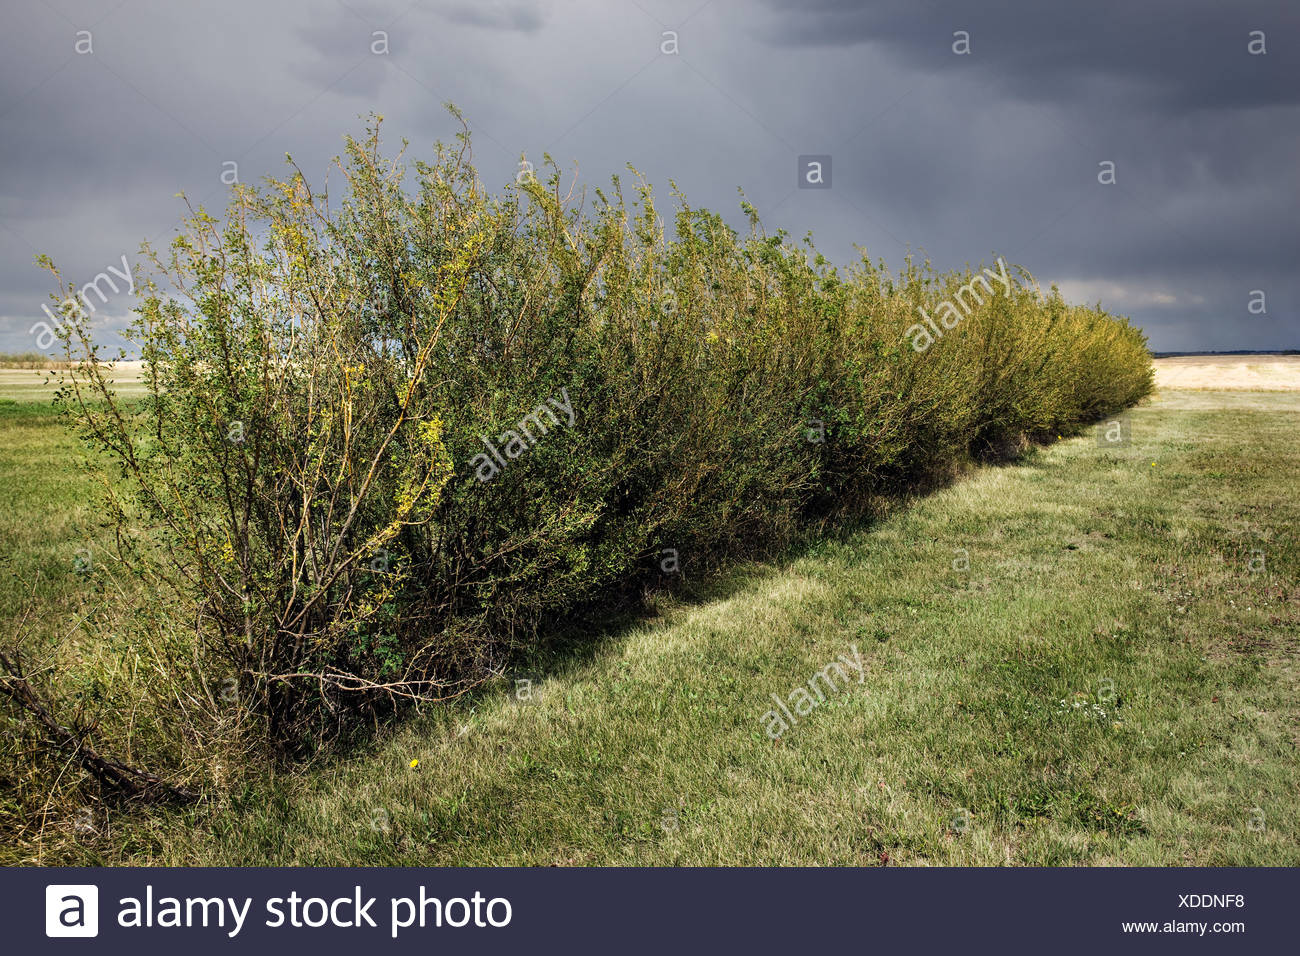 Green hedge in field - Stock Image